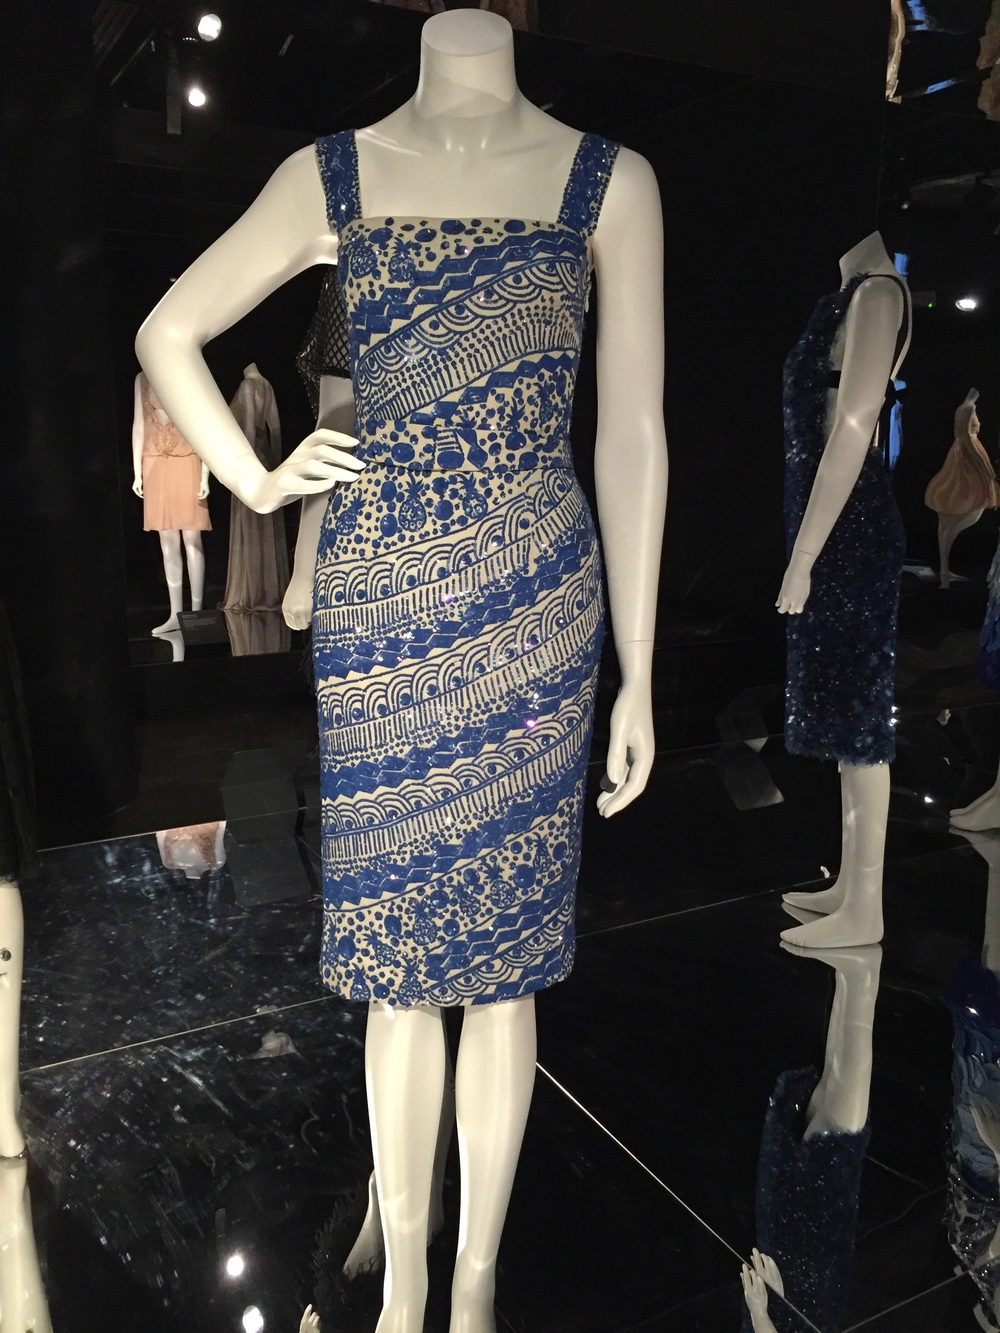 As soon as I saw this dress I loved it. It's so striking with the diagonal beading and the white and blue.